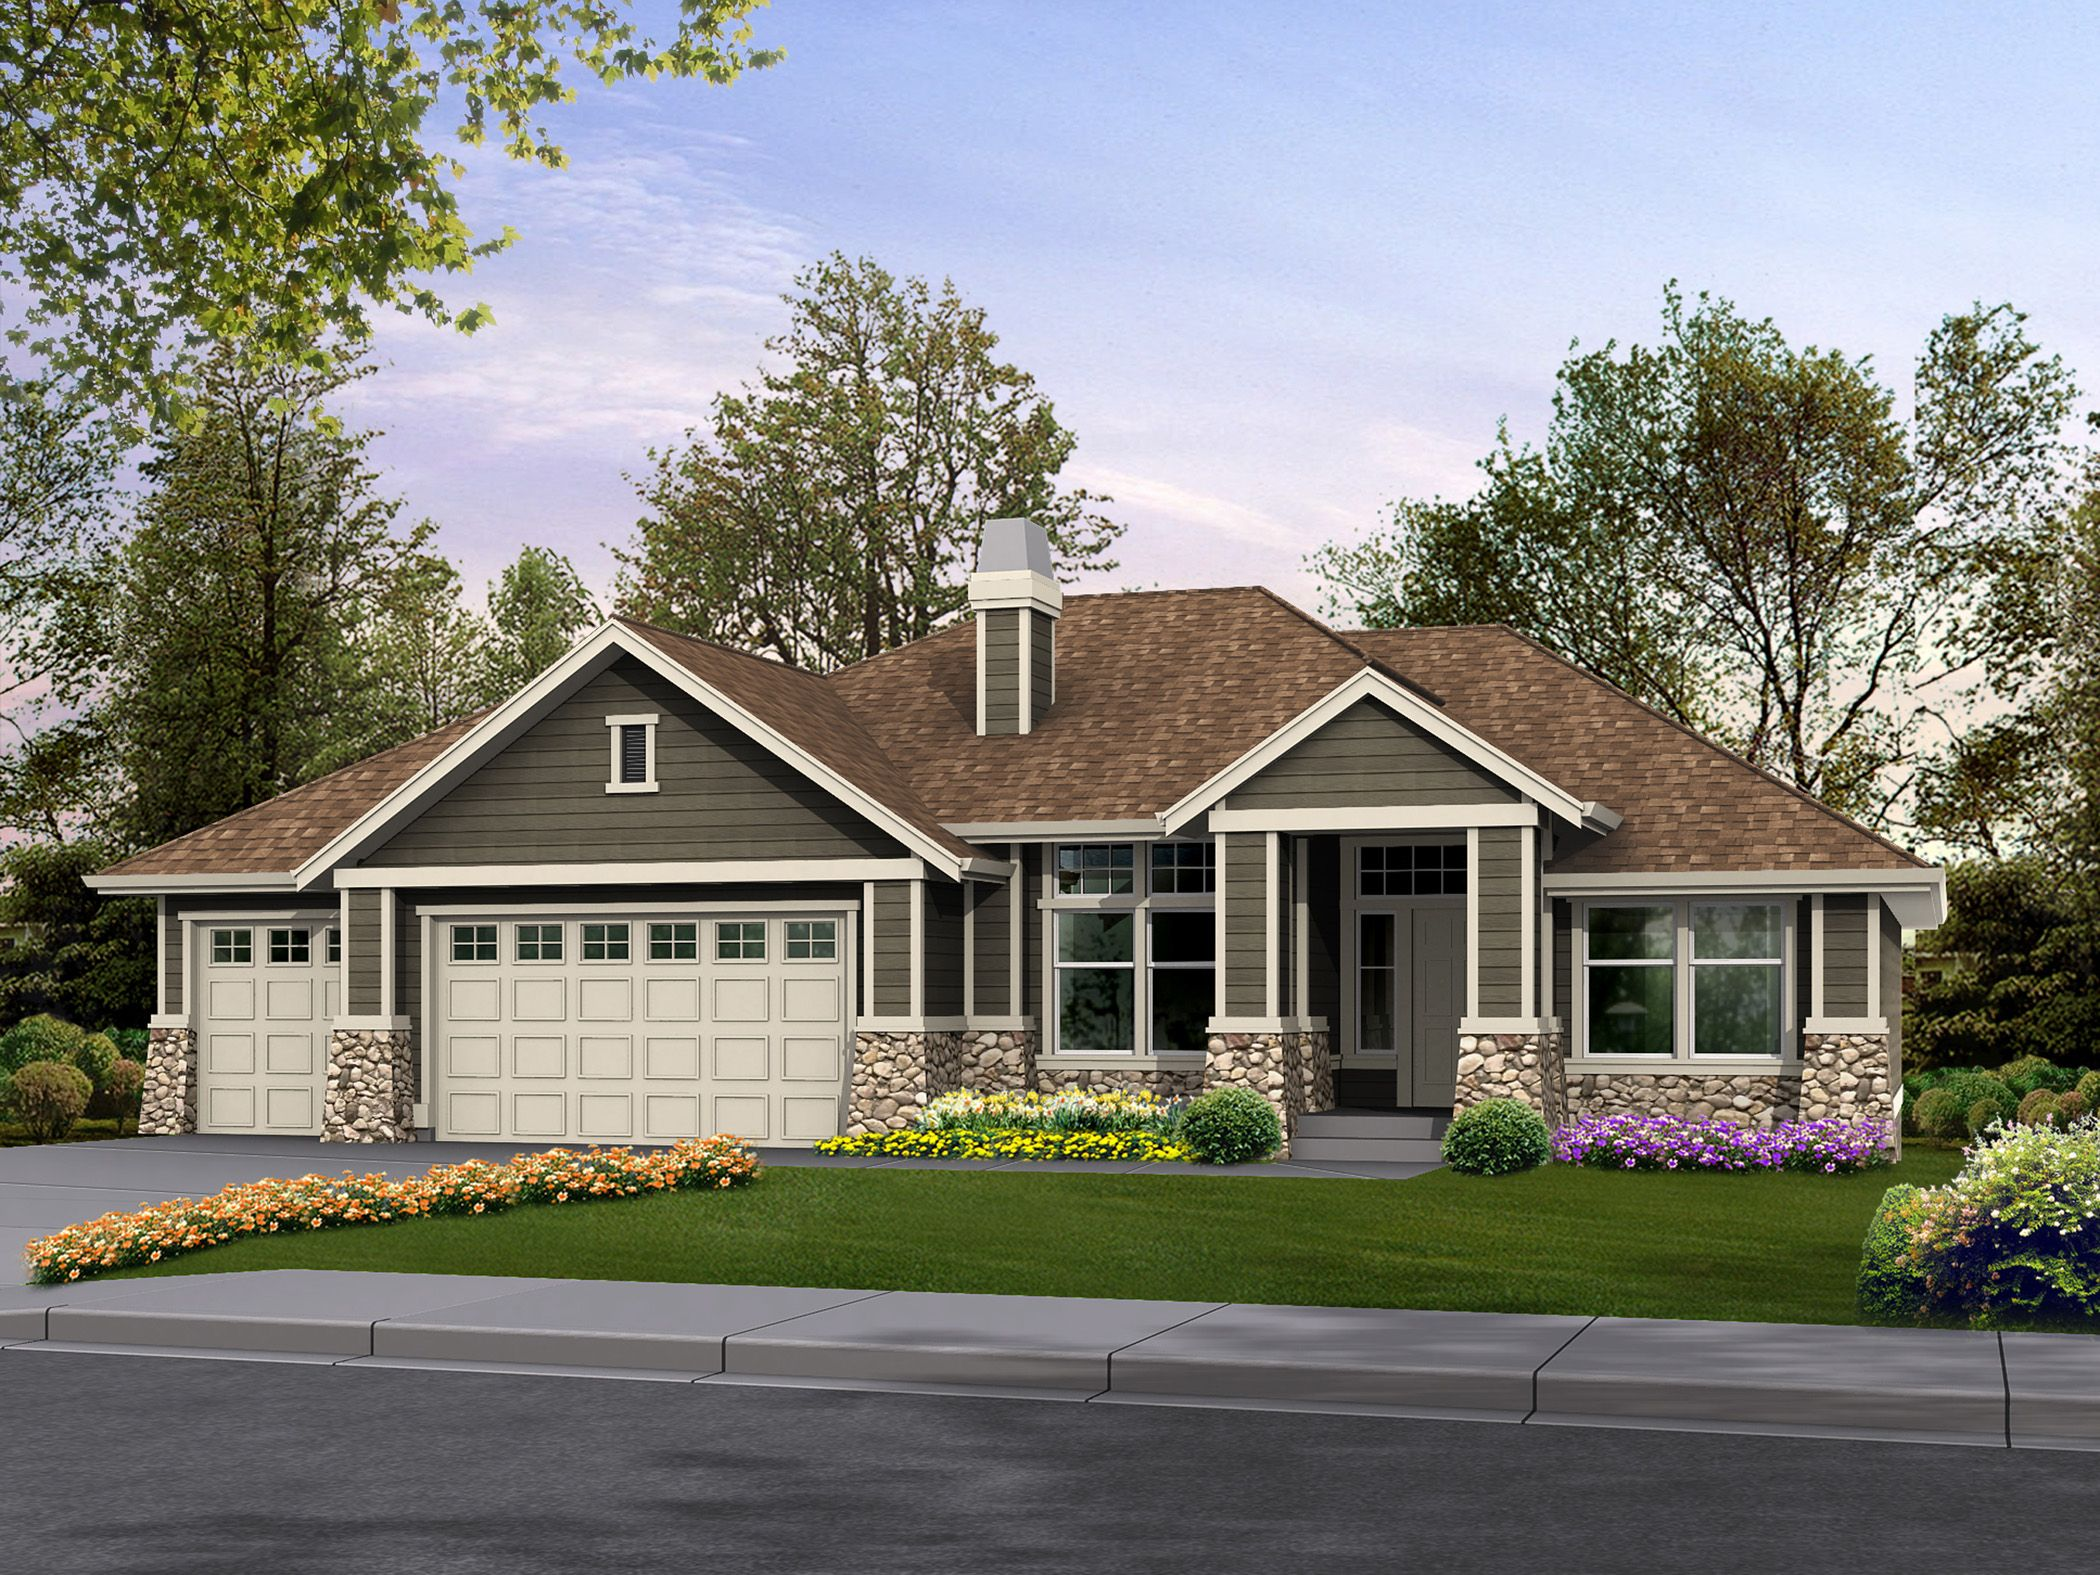 Plan 23234jd Classic Rambler Perfect For Family Living Craftsman Style House Plans Craftsman House Rambler House Plans